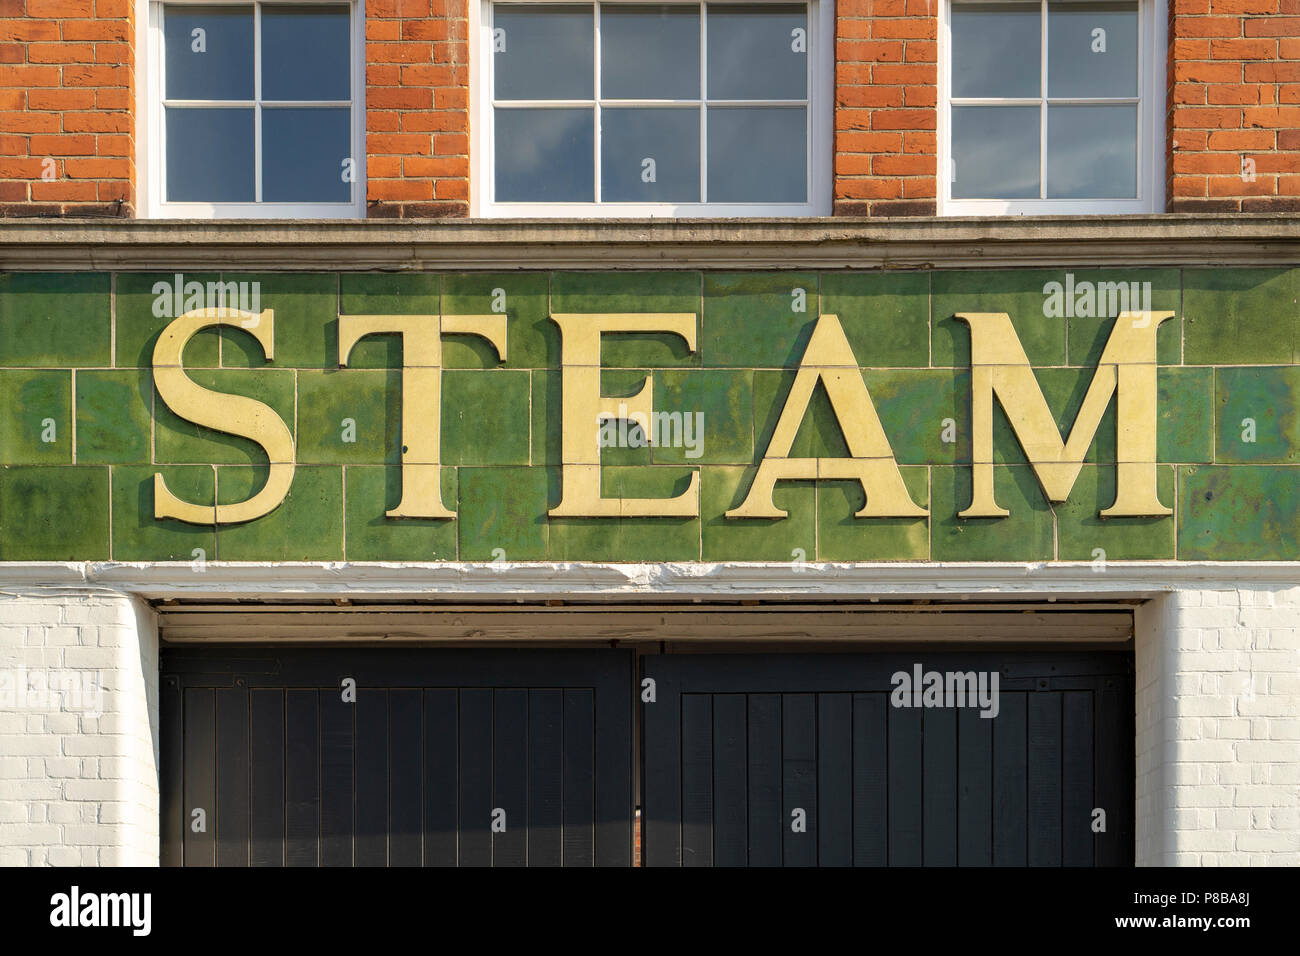 The word steam above a doorway - Stock Image